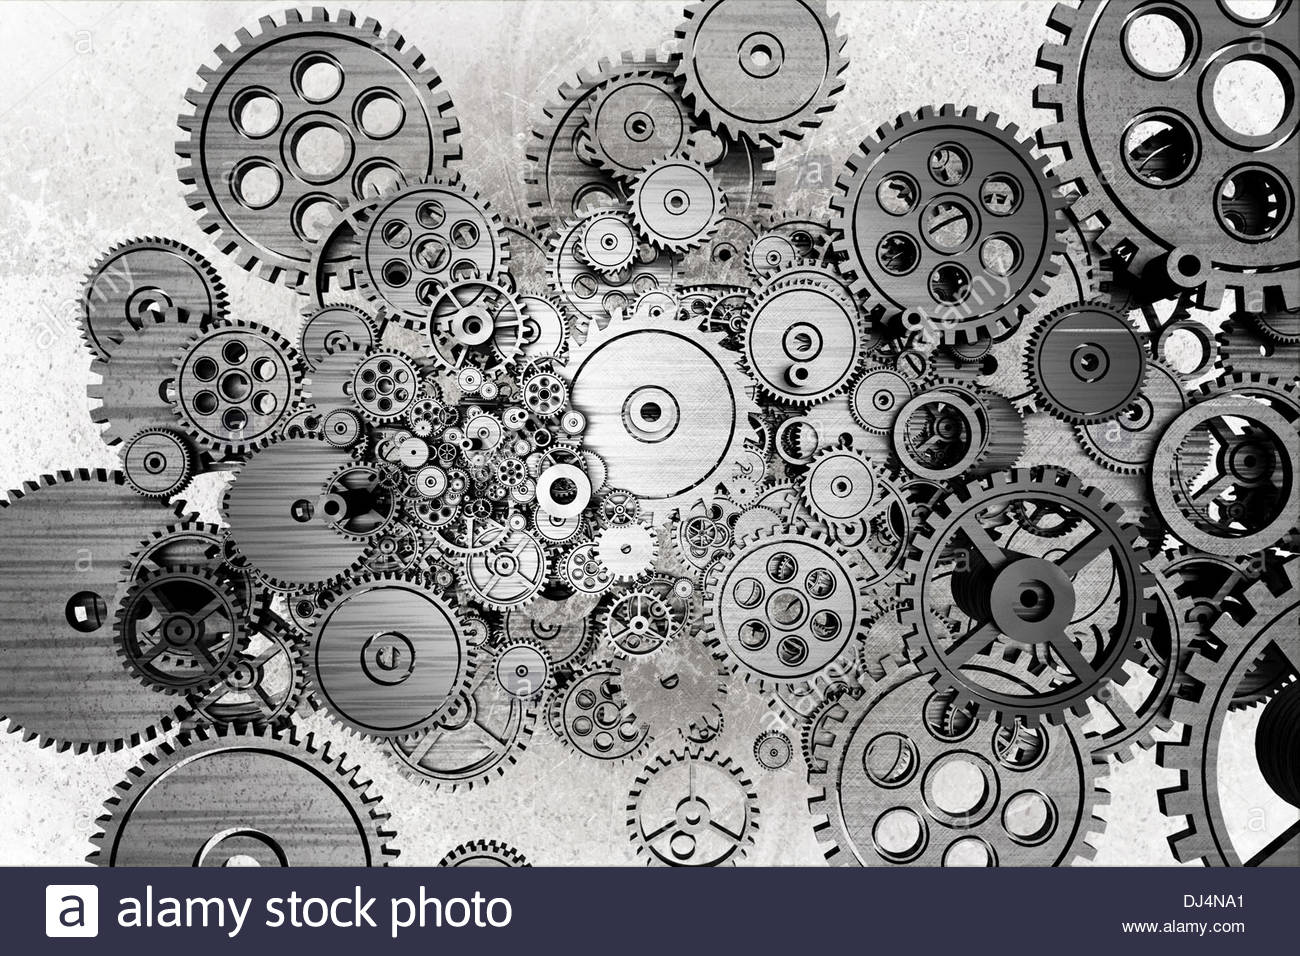 1300x956 Grunge Gears Background. Black And White Dirty Grunge Mechanical